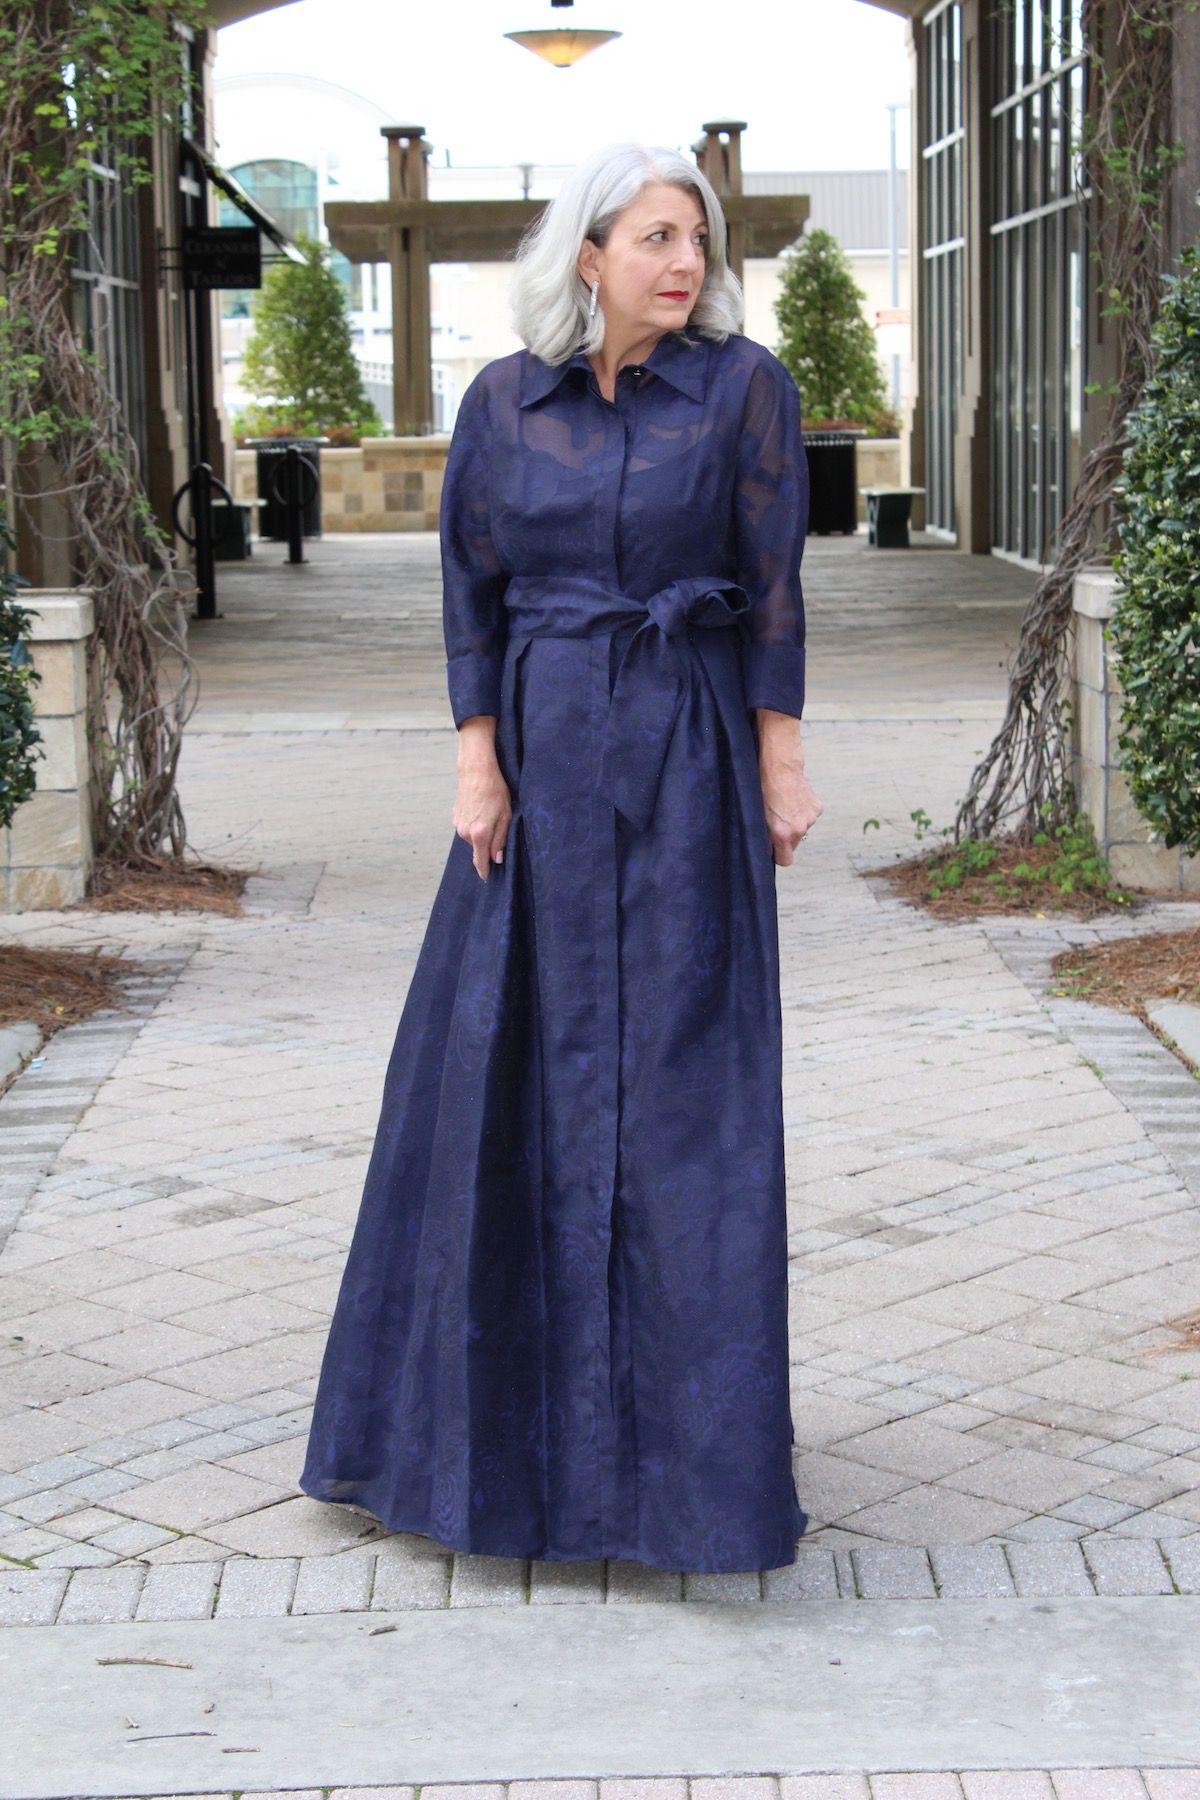 301dde22d2 ¾ Sleeve Jacquard Organza Shirtdress Gown with Floral Print